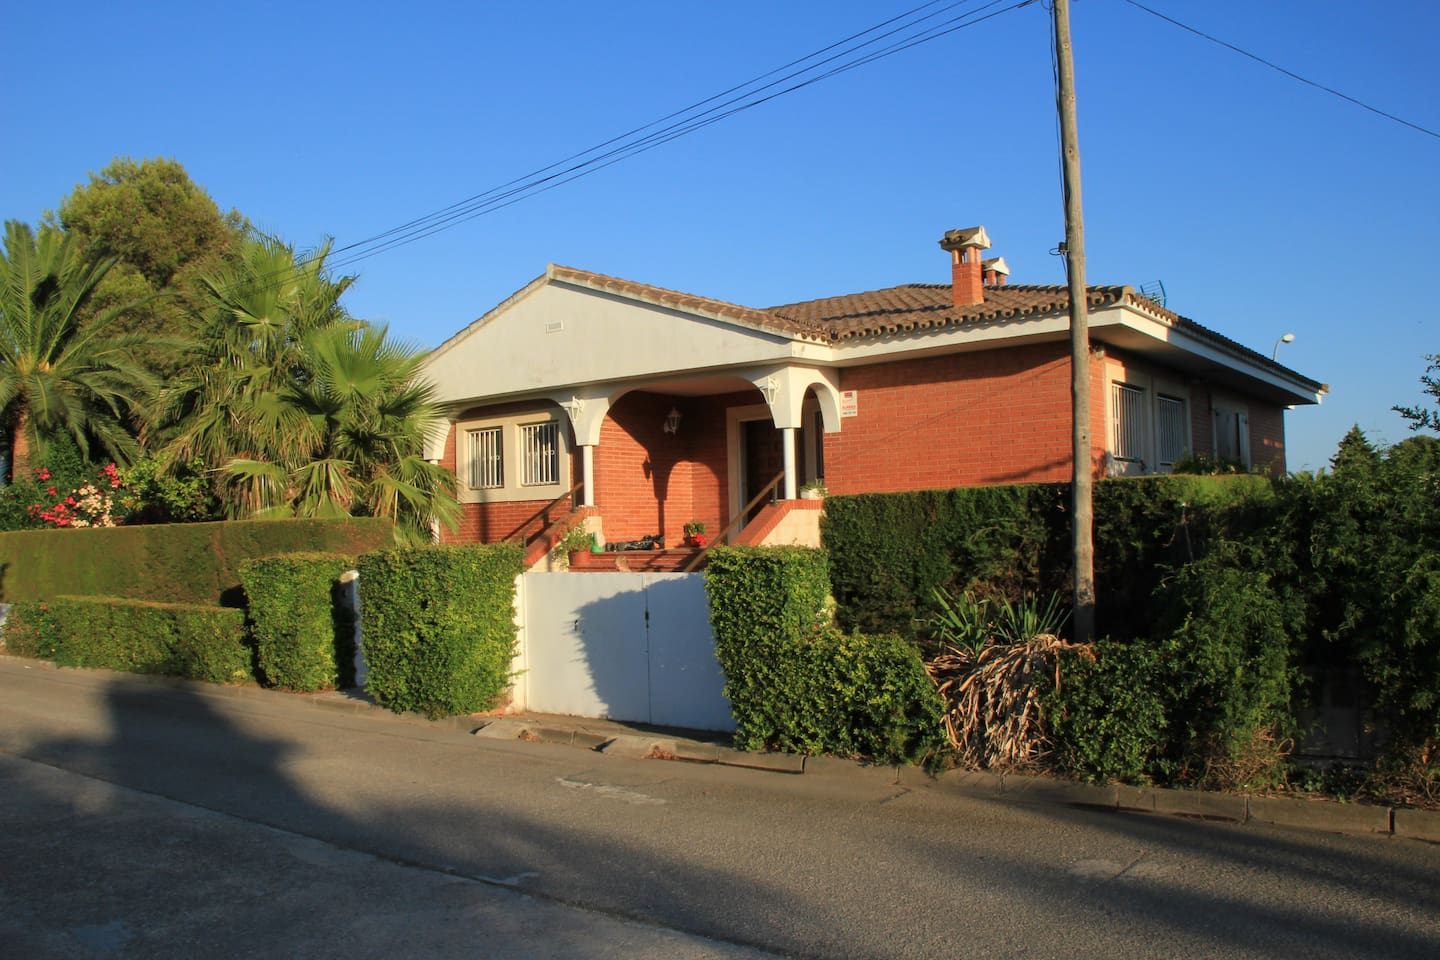 House with entrance